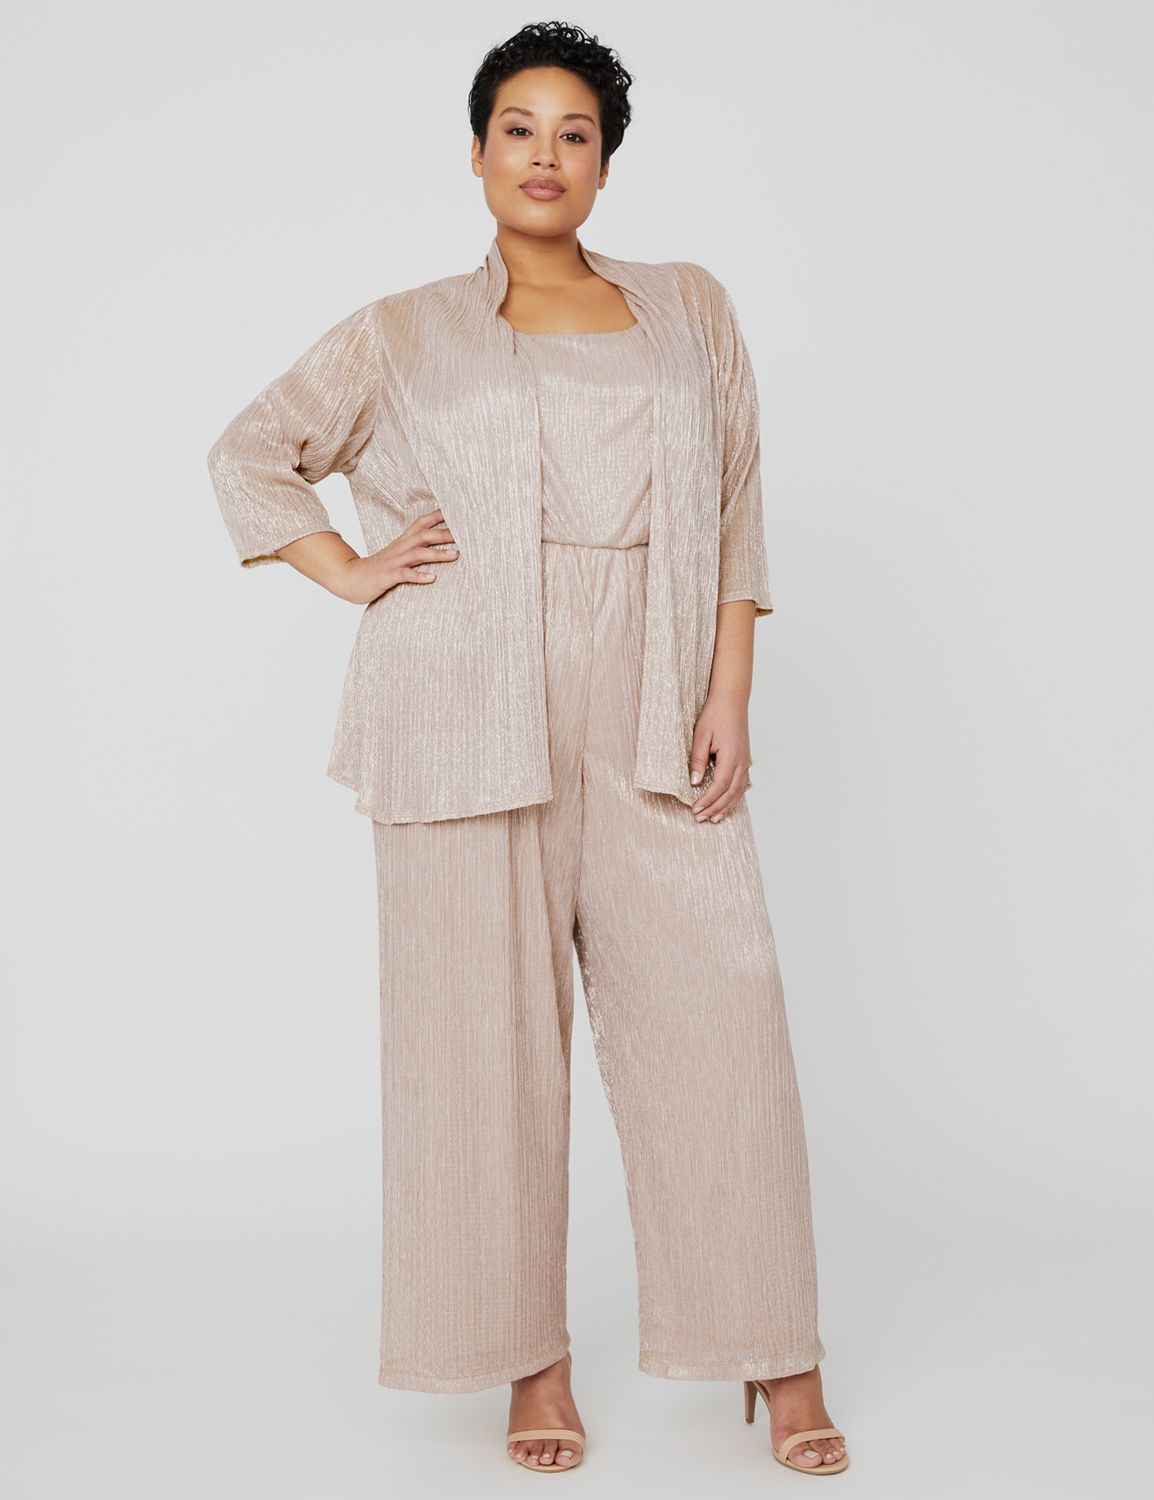 Shimmer Jumpsuit with Jacket 1090989 Jumpsuit with Jacket (94982 MP-300099382